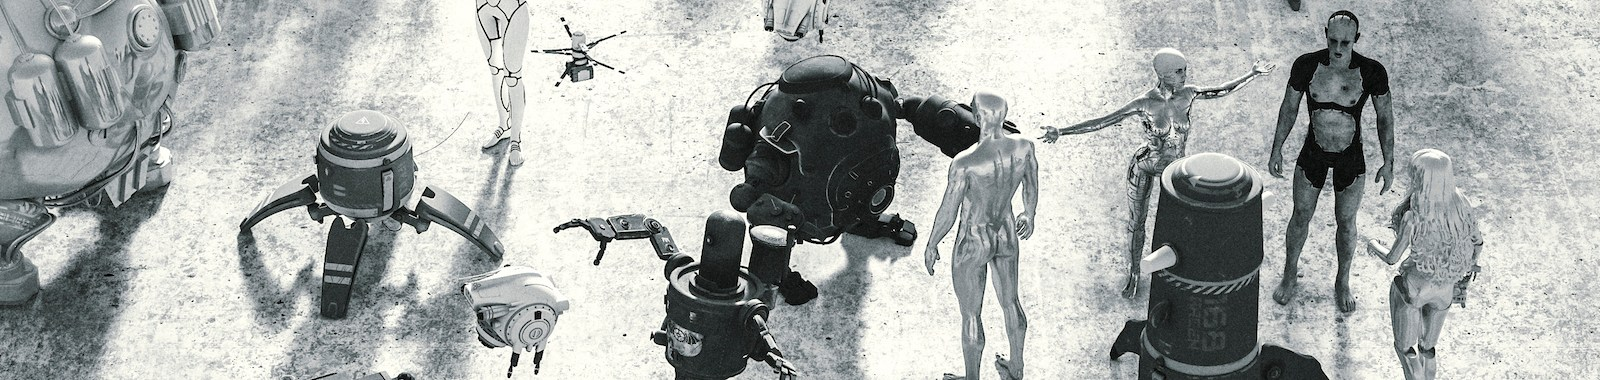 Last man arguing with drone robot.